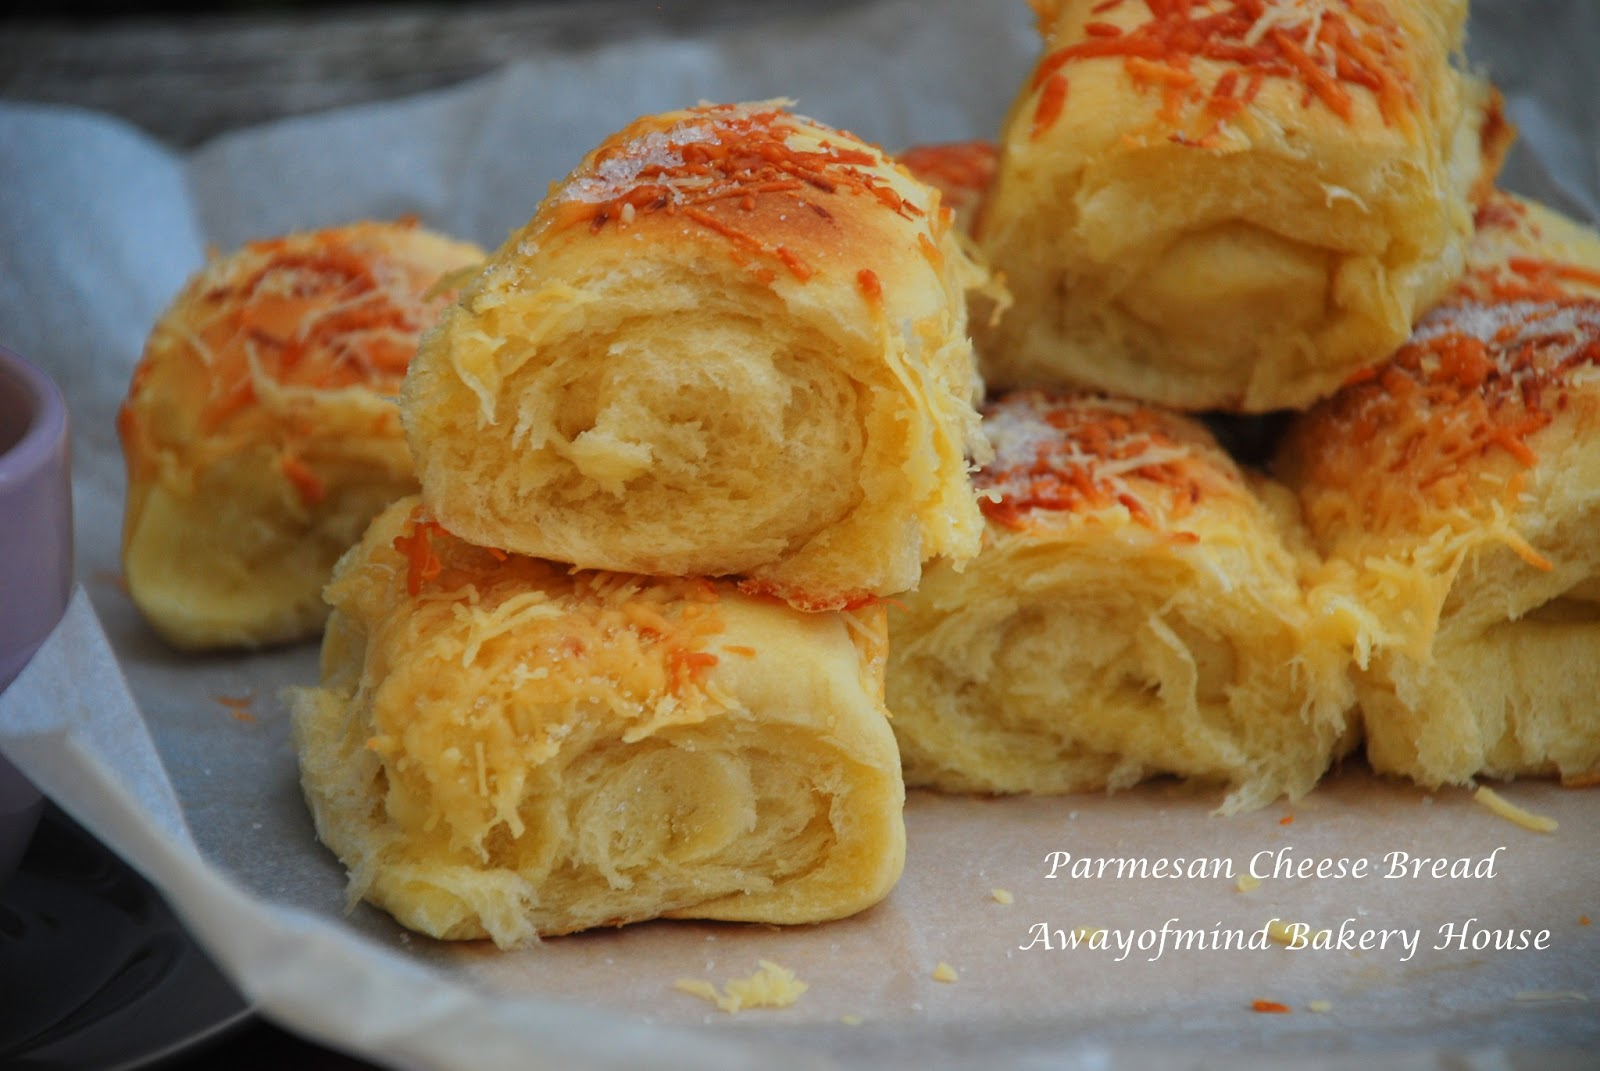 Awayofmind Bakery House: Parmesan Cheese Bread (straight ...